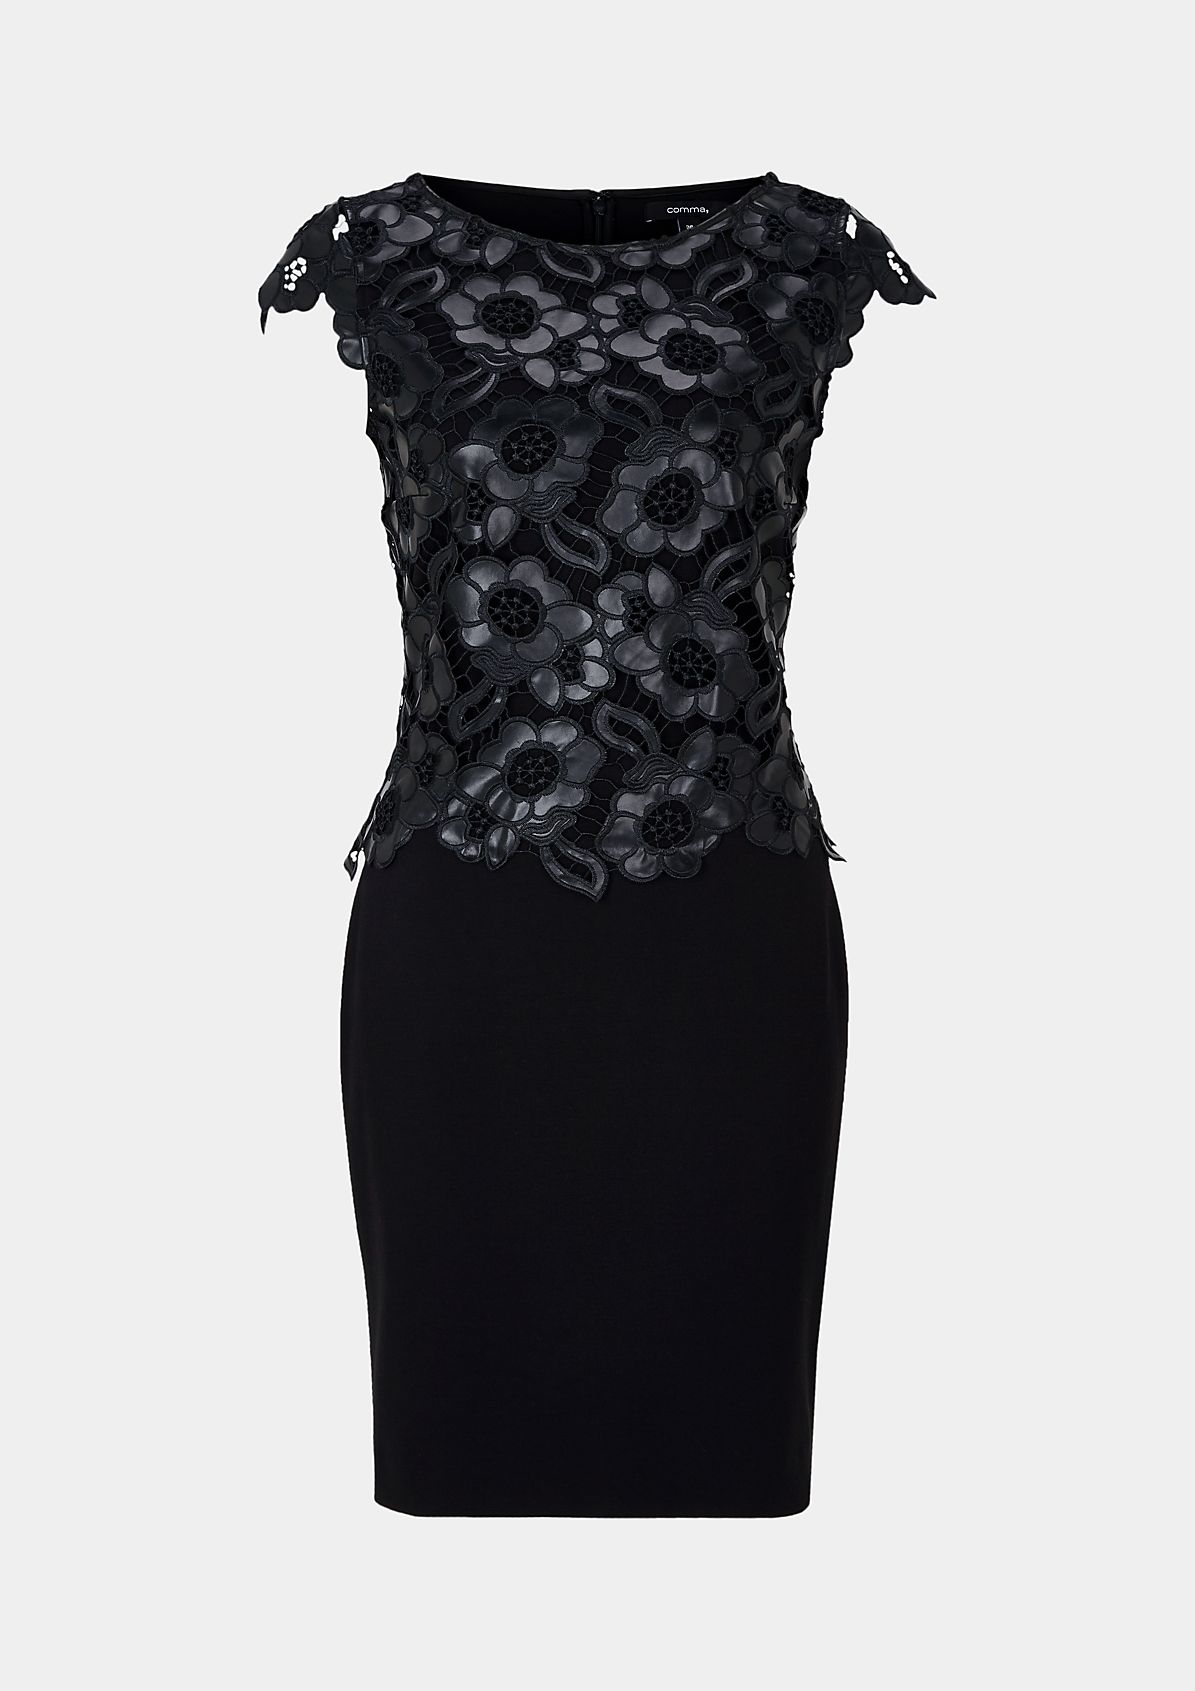 Feminine evening dress with imitation leather lace decorations from s.Oliver